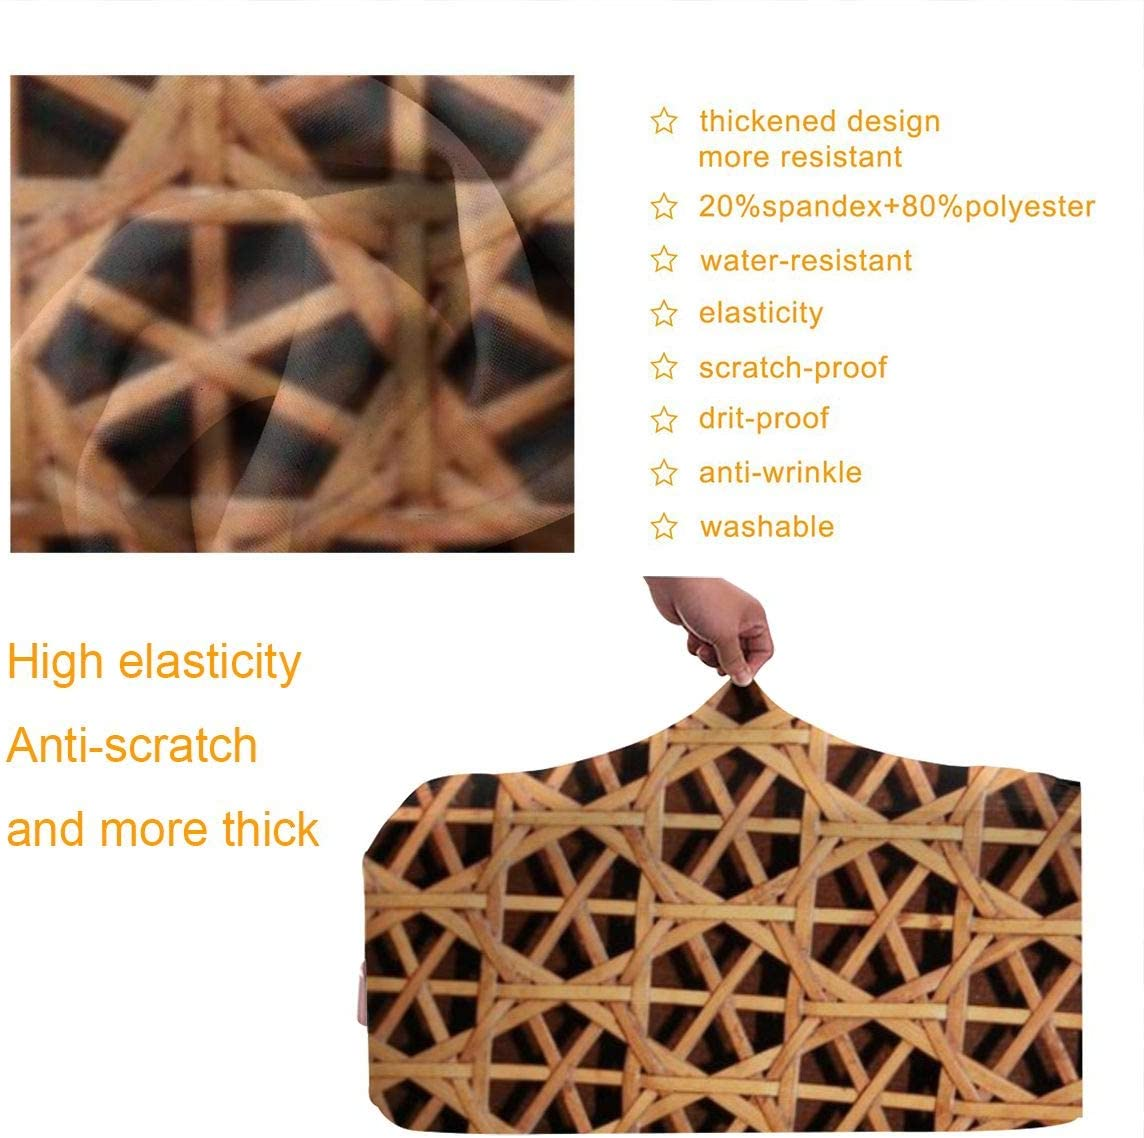 Travel Luggage Cover Wicker Woven Grid Design Travel Suitcase Protector Anti-scratch Washable Dust Thicken Elasticity Cover